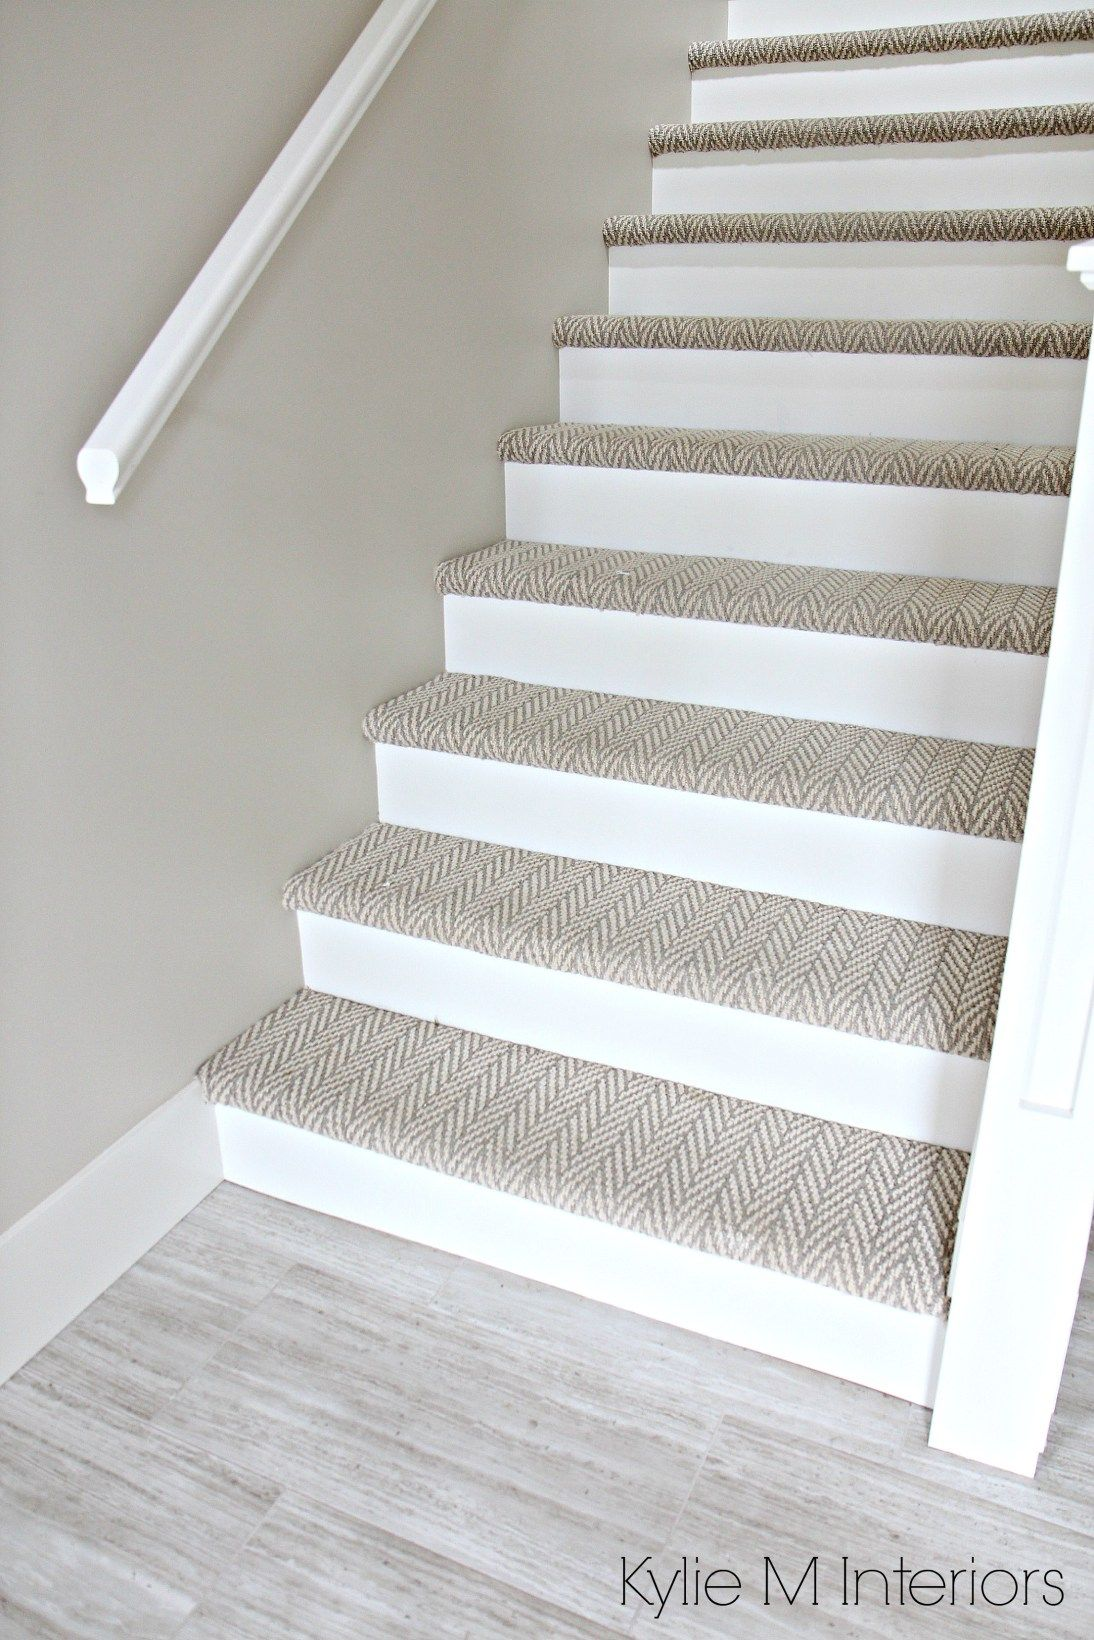 Carpet stairs stairs with carpet herringbone treads and painted white risers, looks like  a MMSJBPK